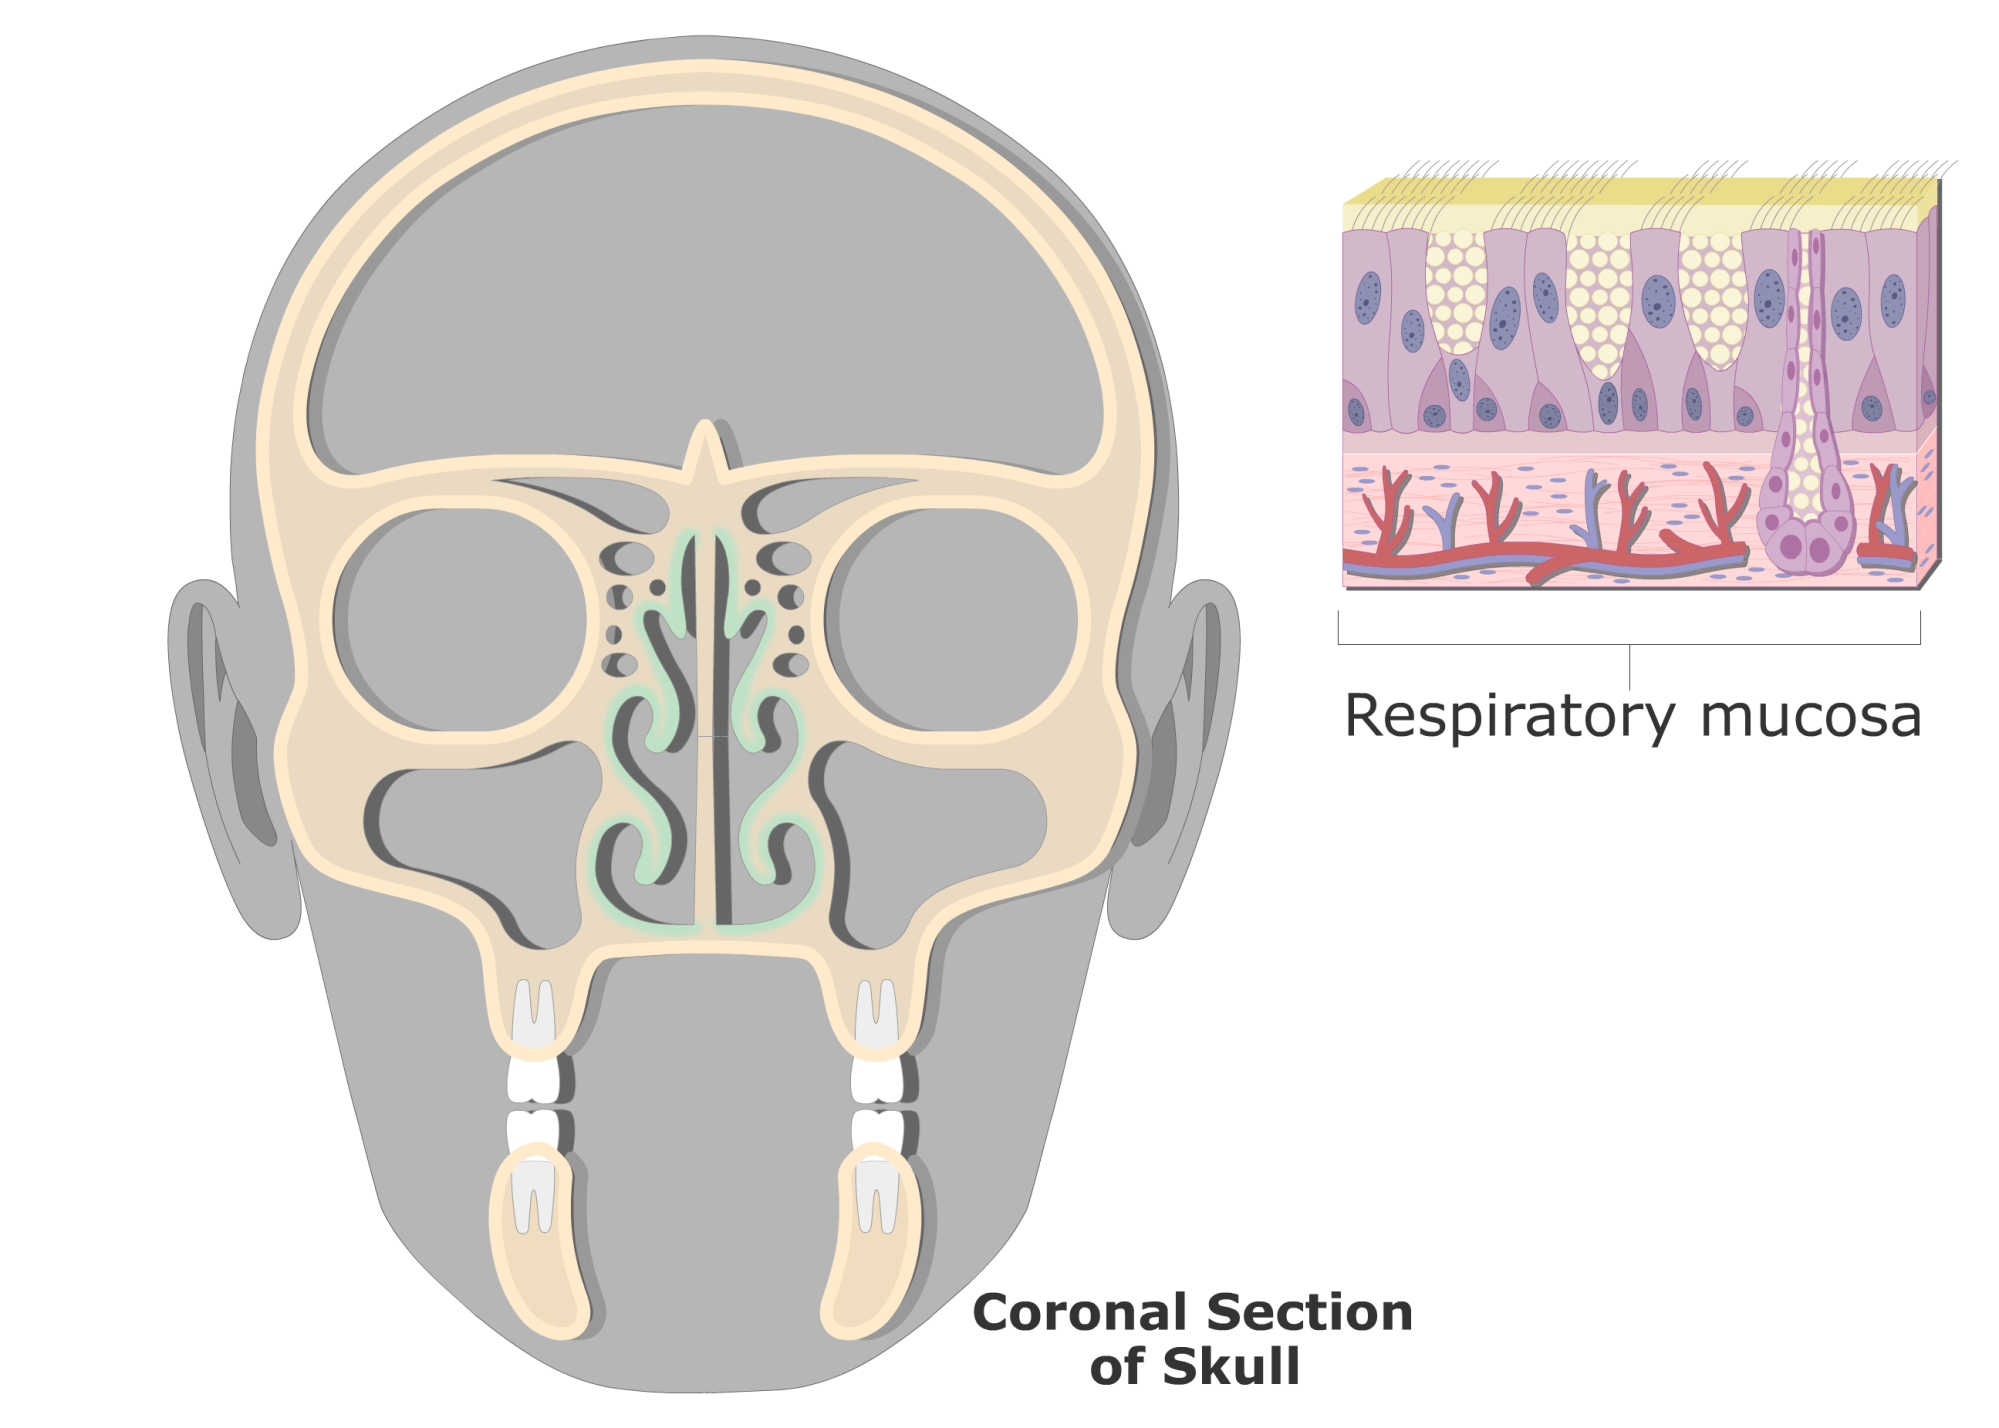 hight resolution of coronal view of the respiratory mucosa and highlighted